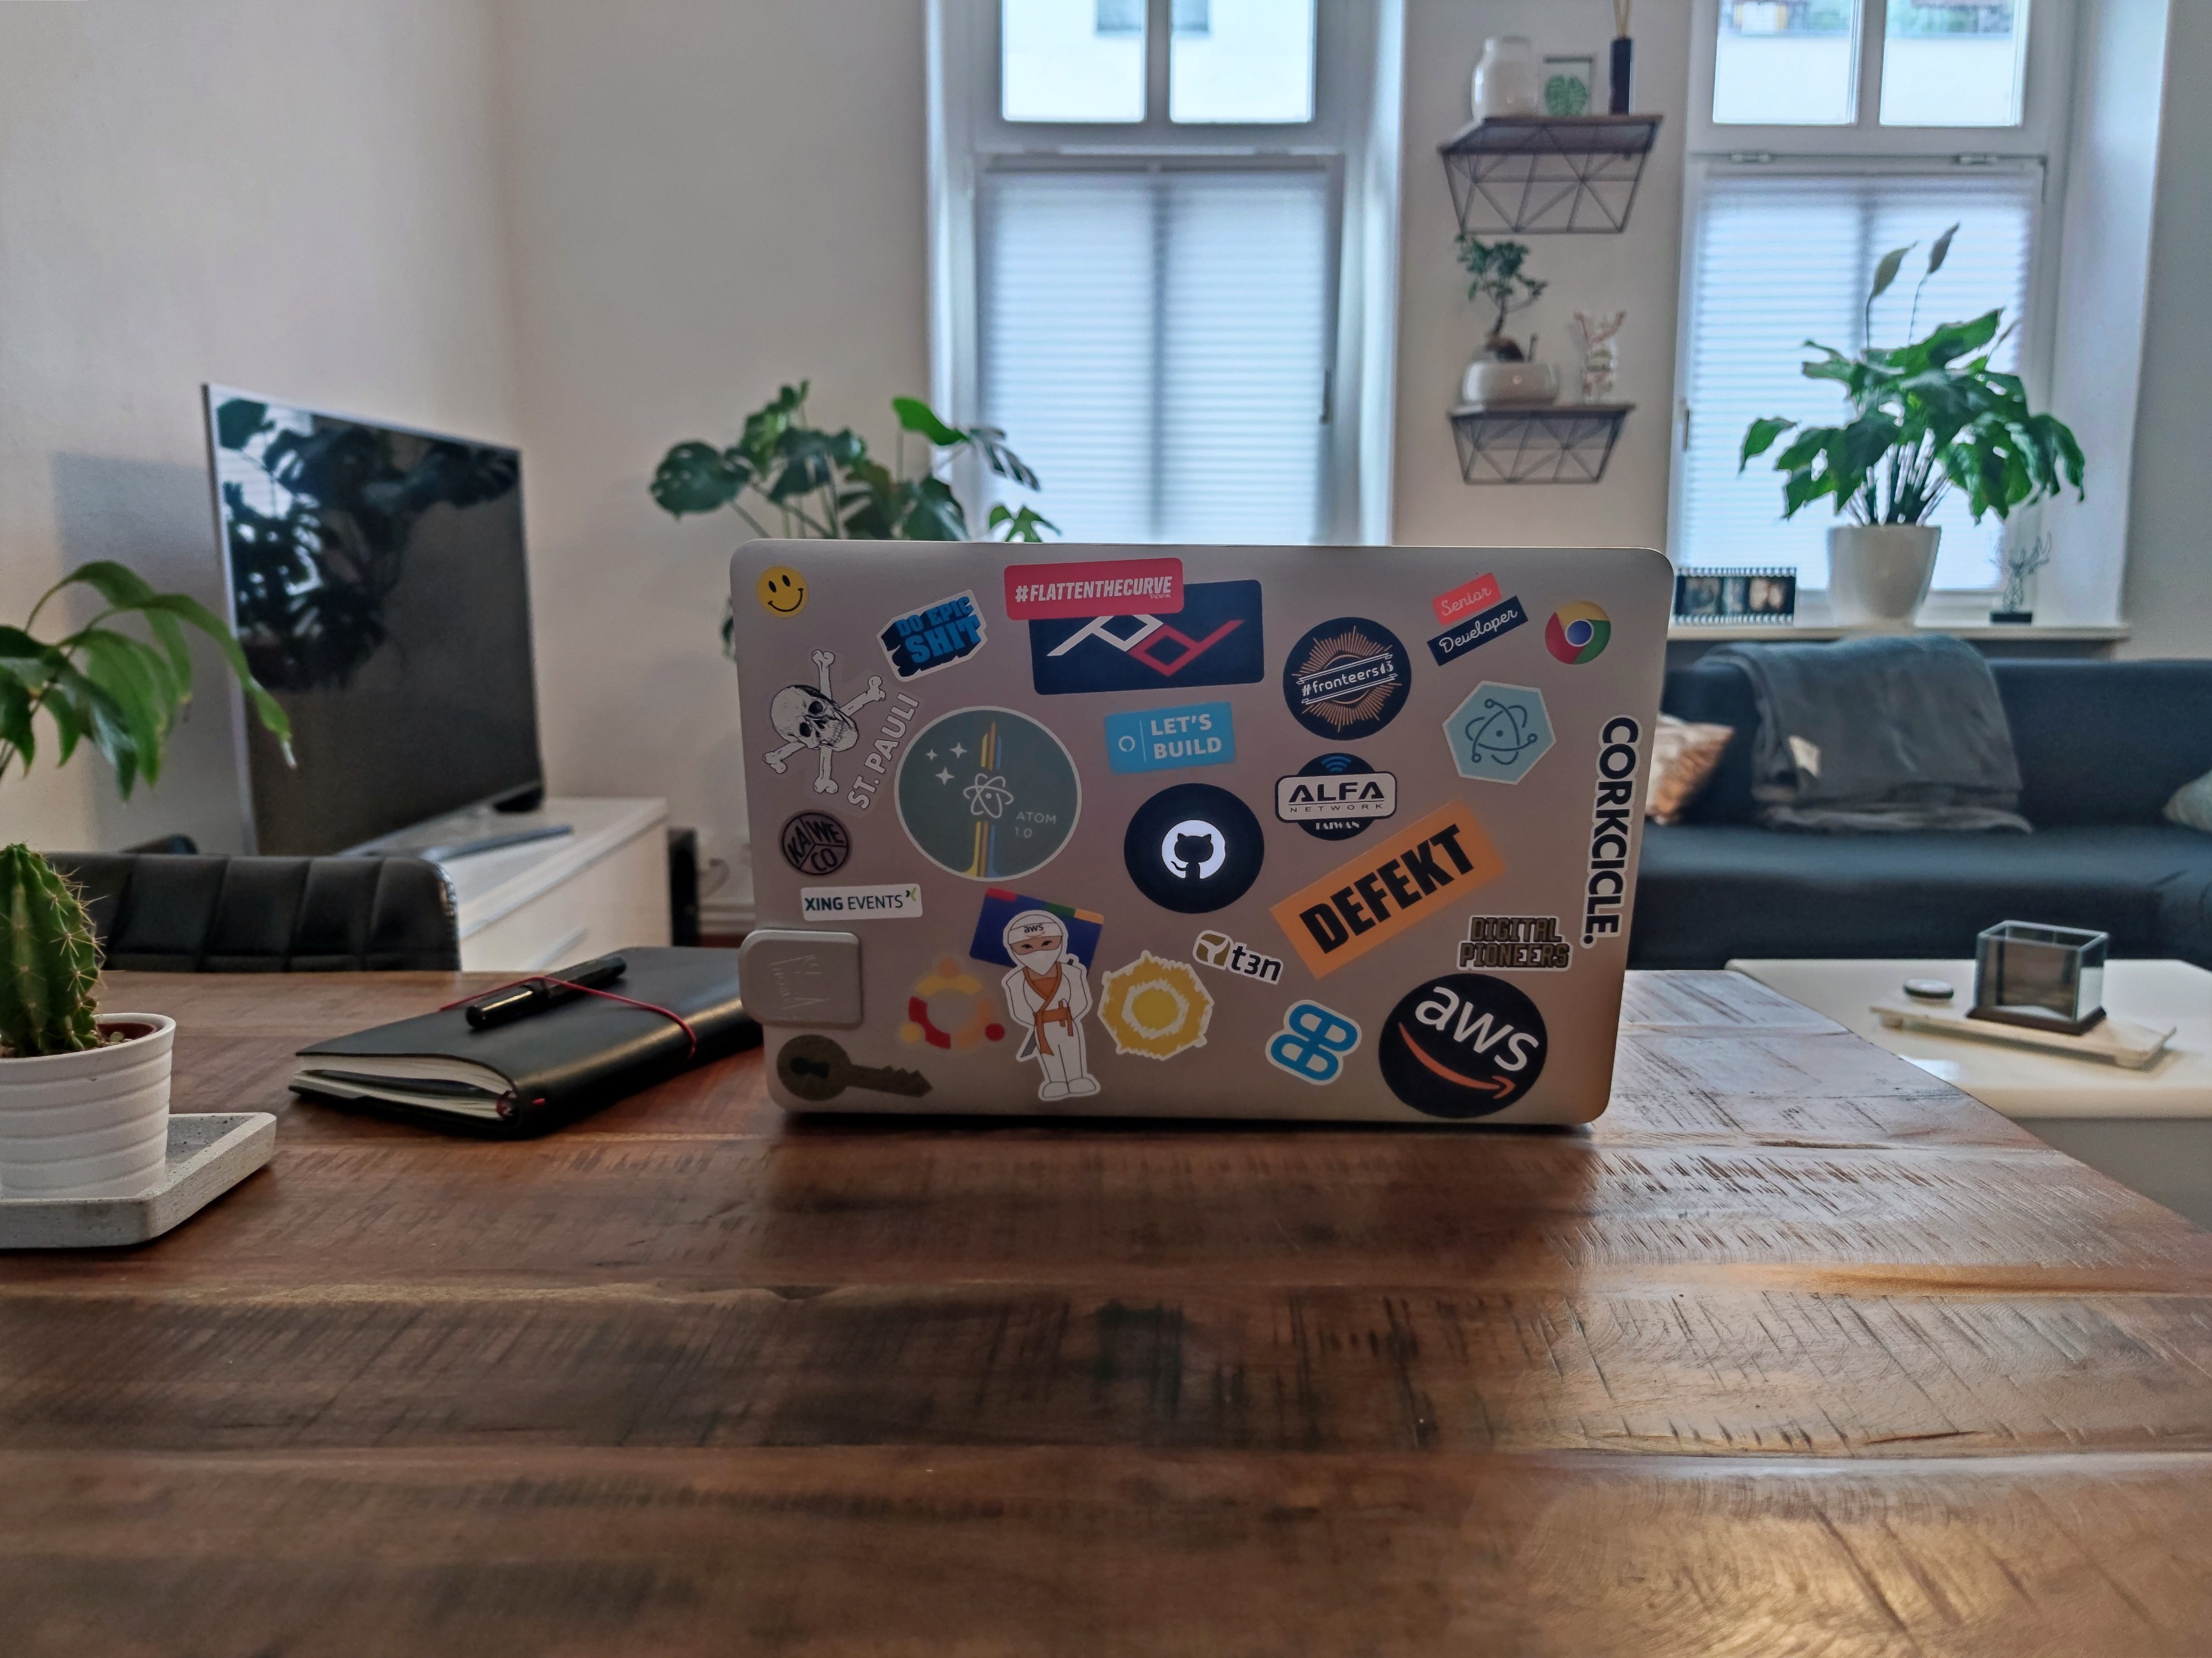 A MacBook with a bunch of stickers on it